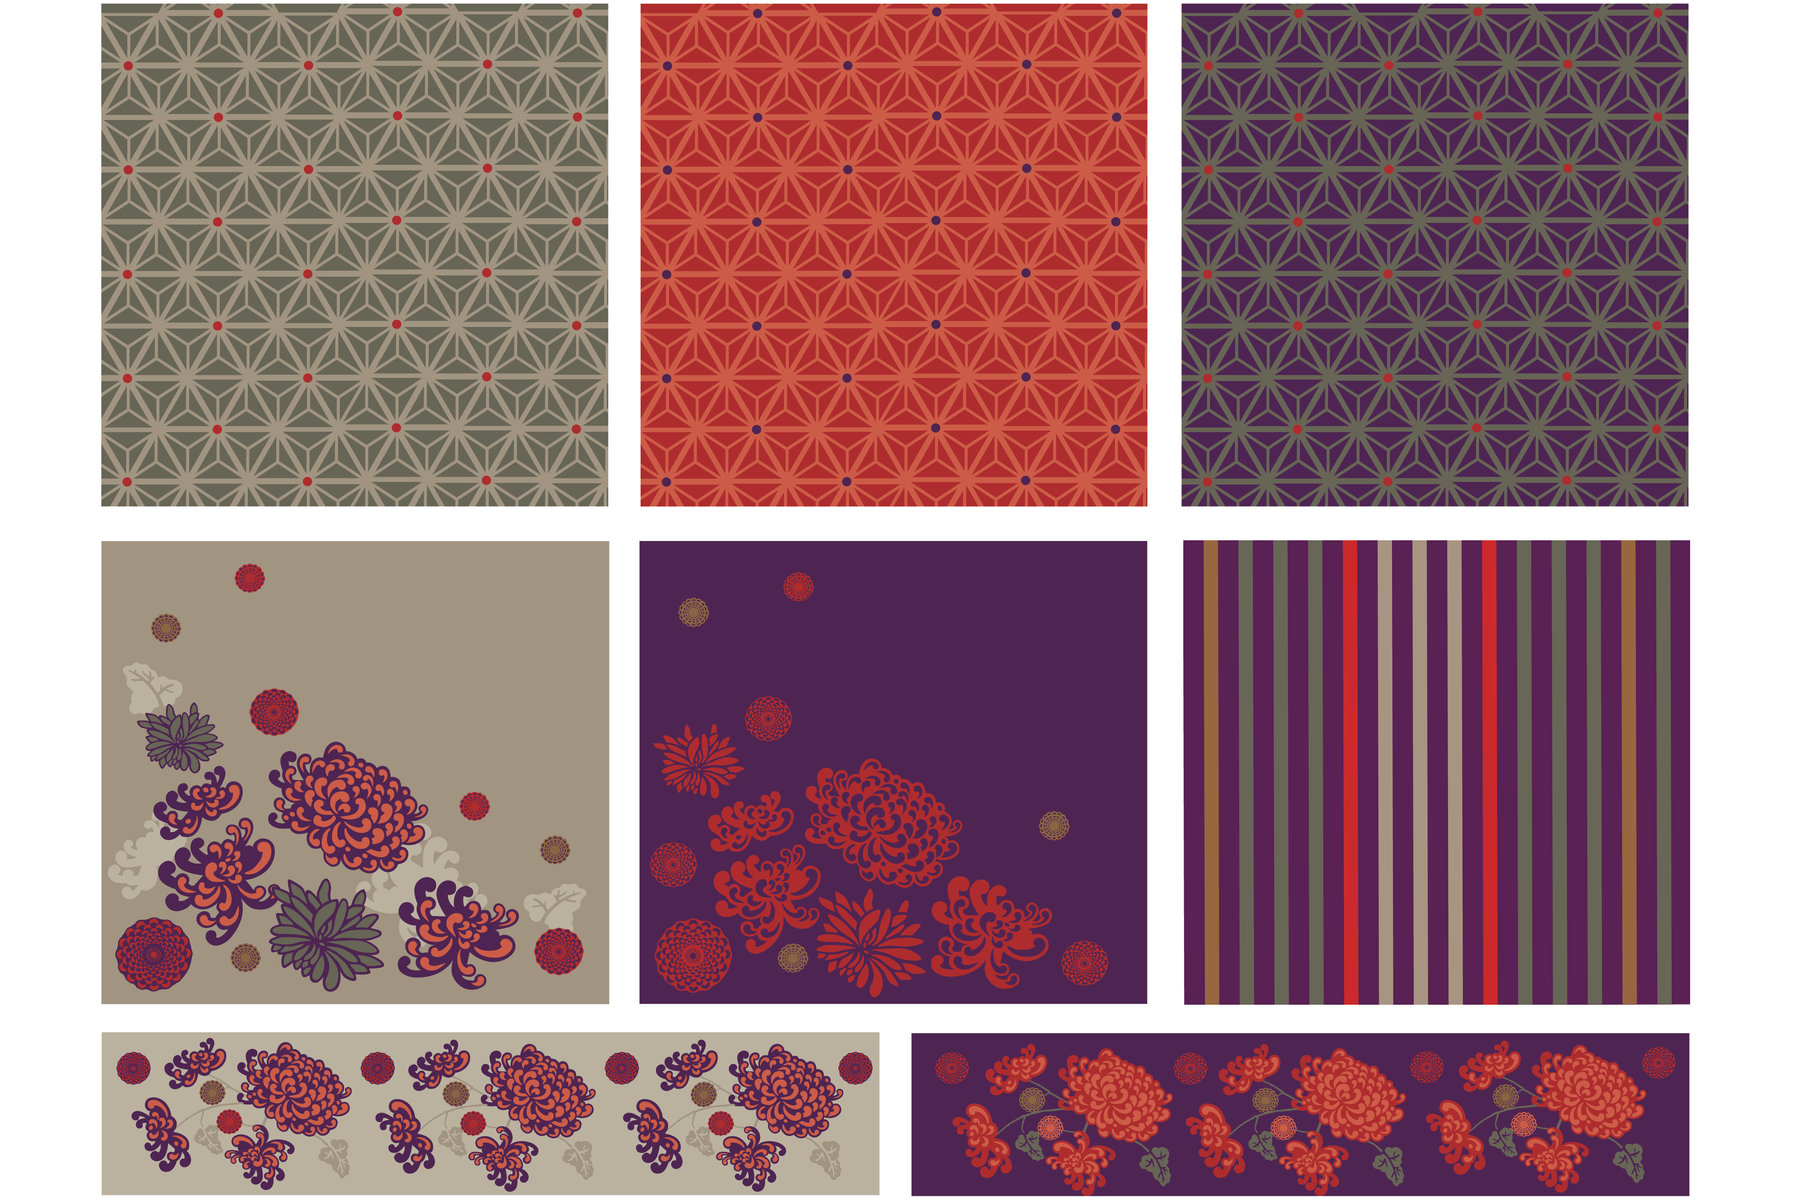 Surface design for application across a range of homeware and gifts.